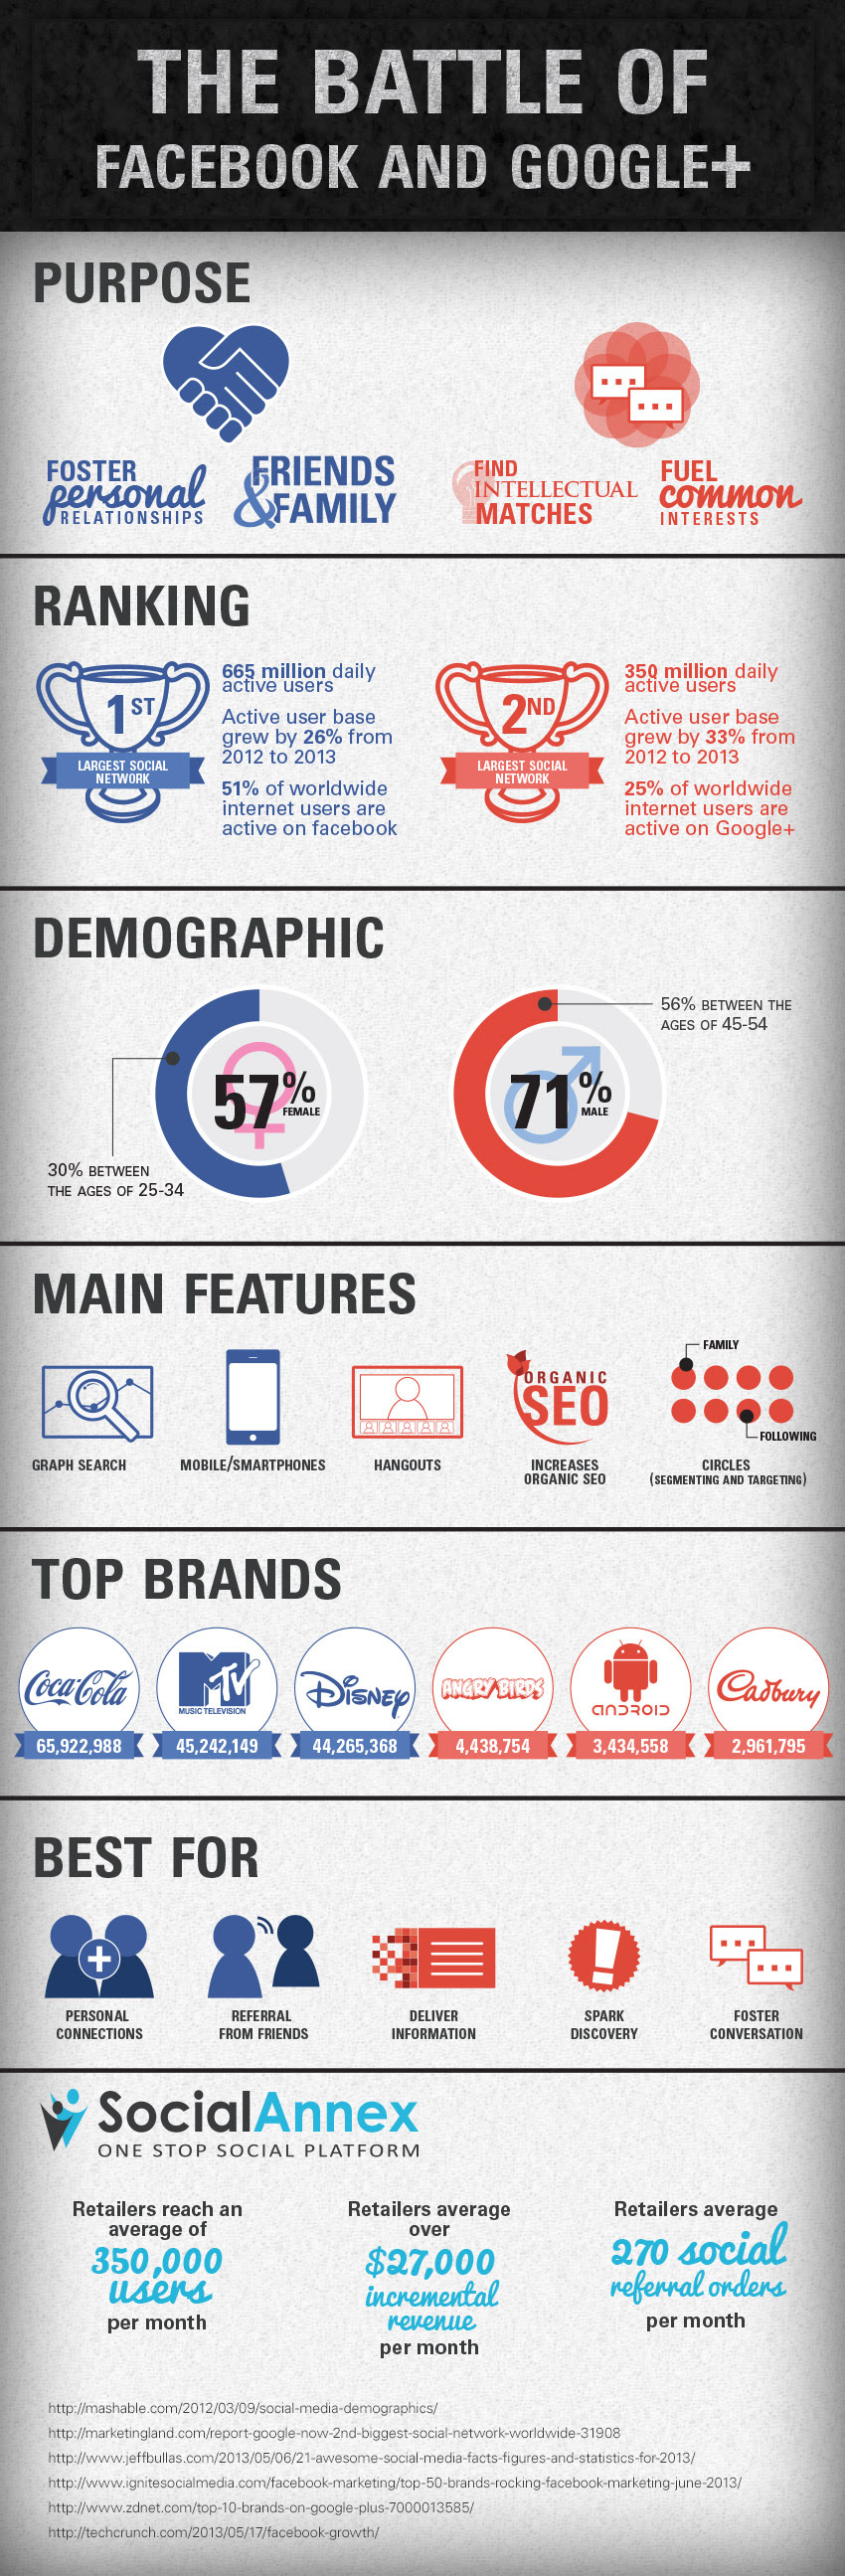 Google Plus Vs Facebook [infographic]